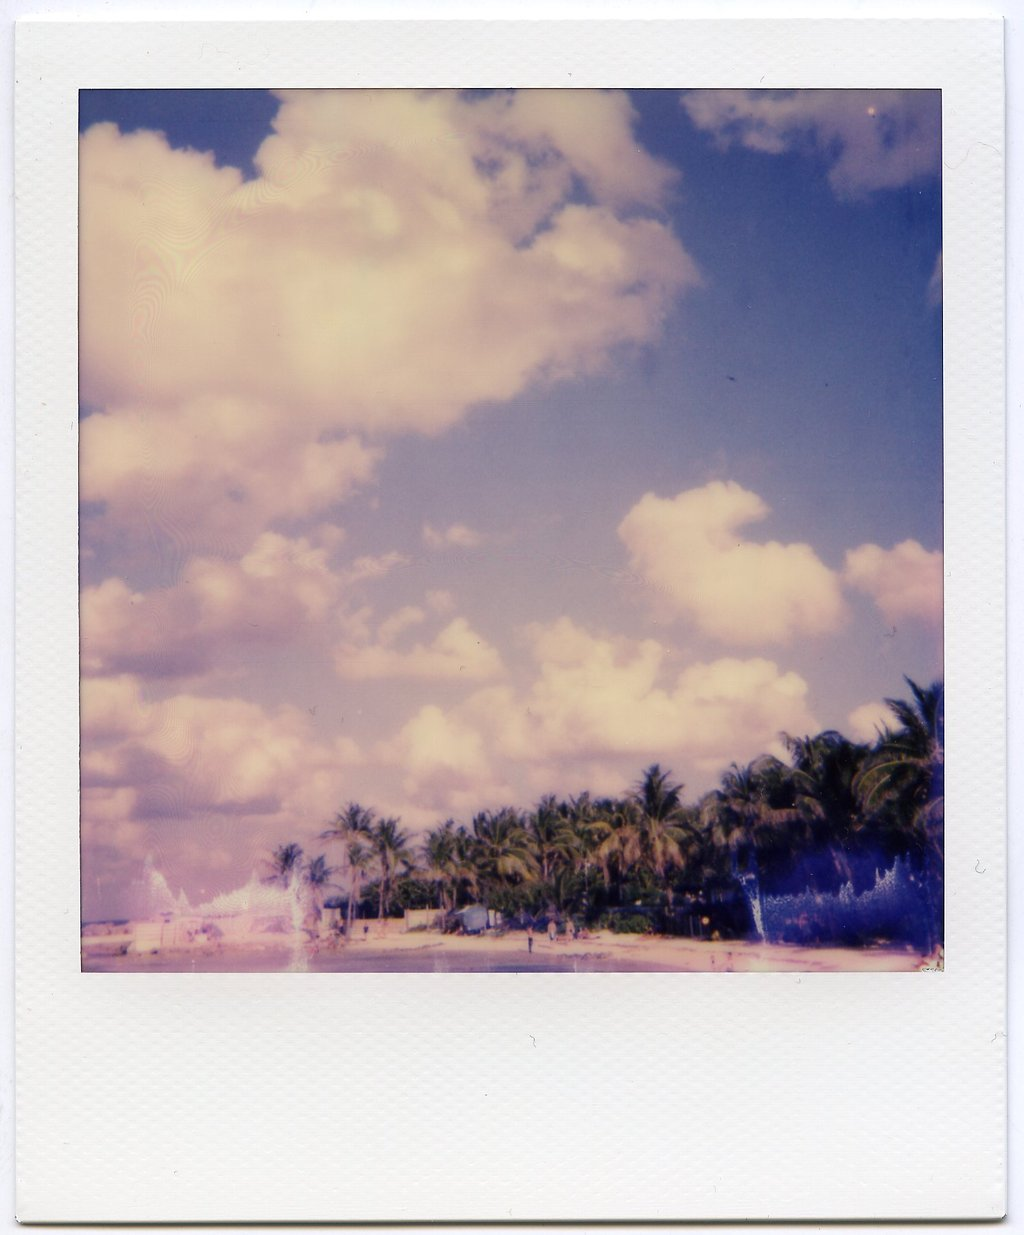 polaroid_cancun_032.jpg